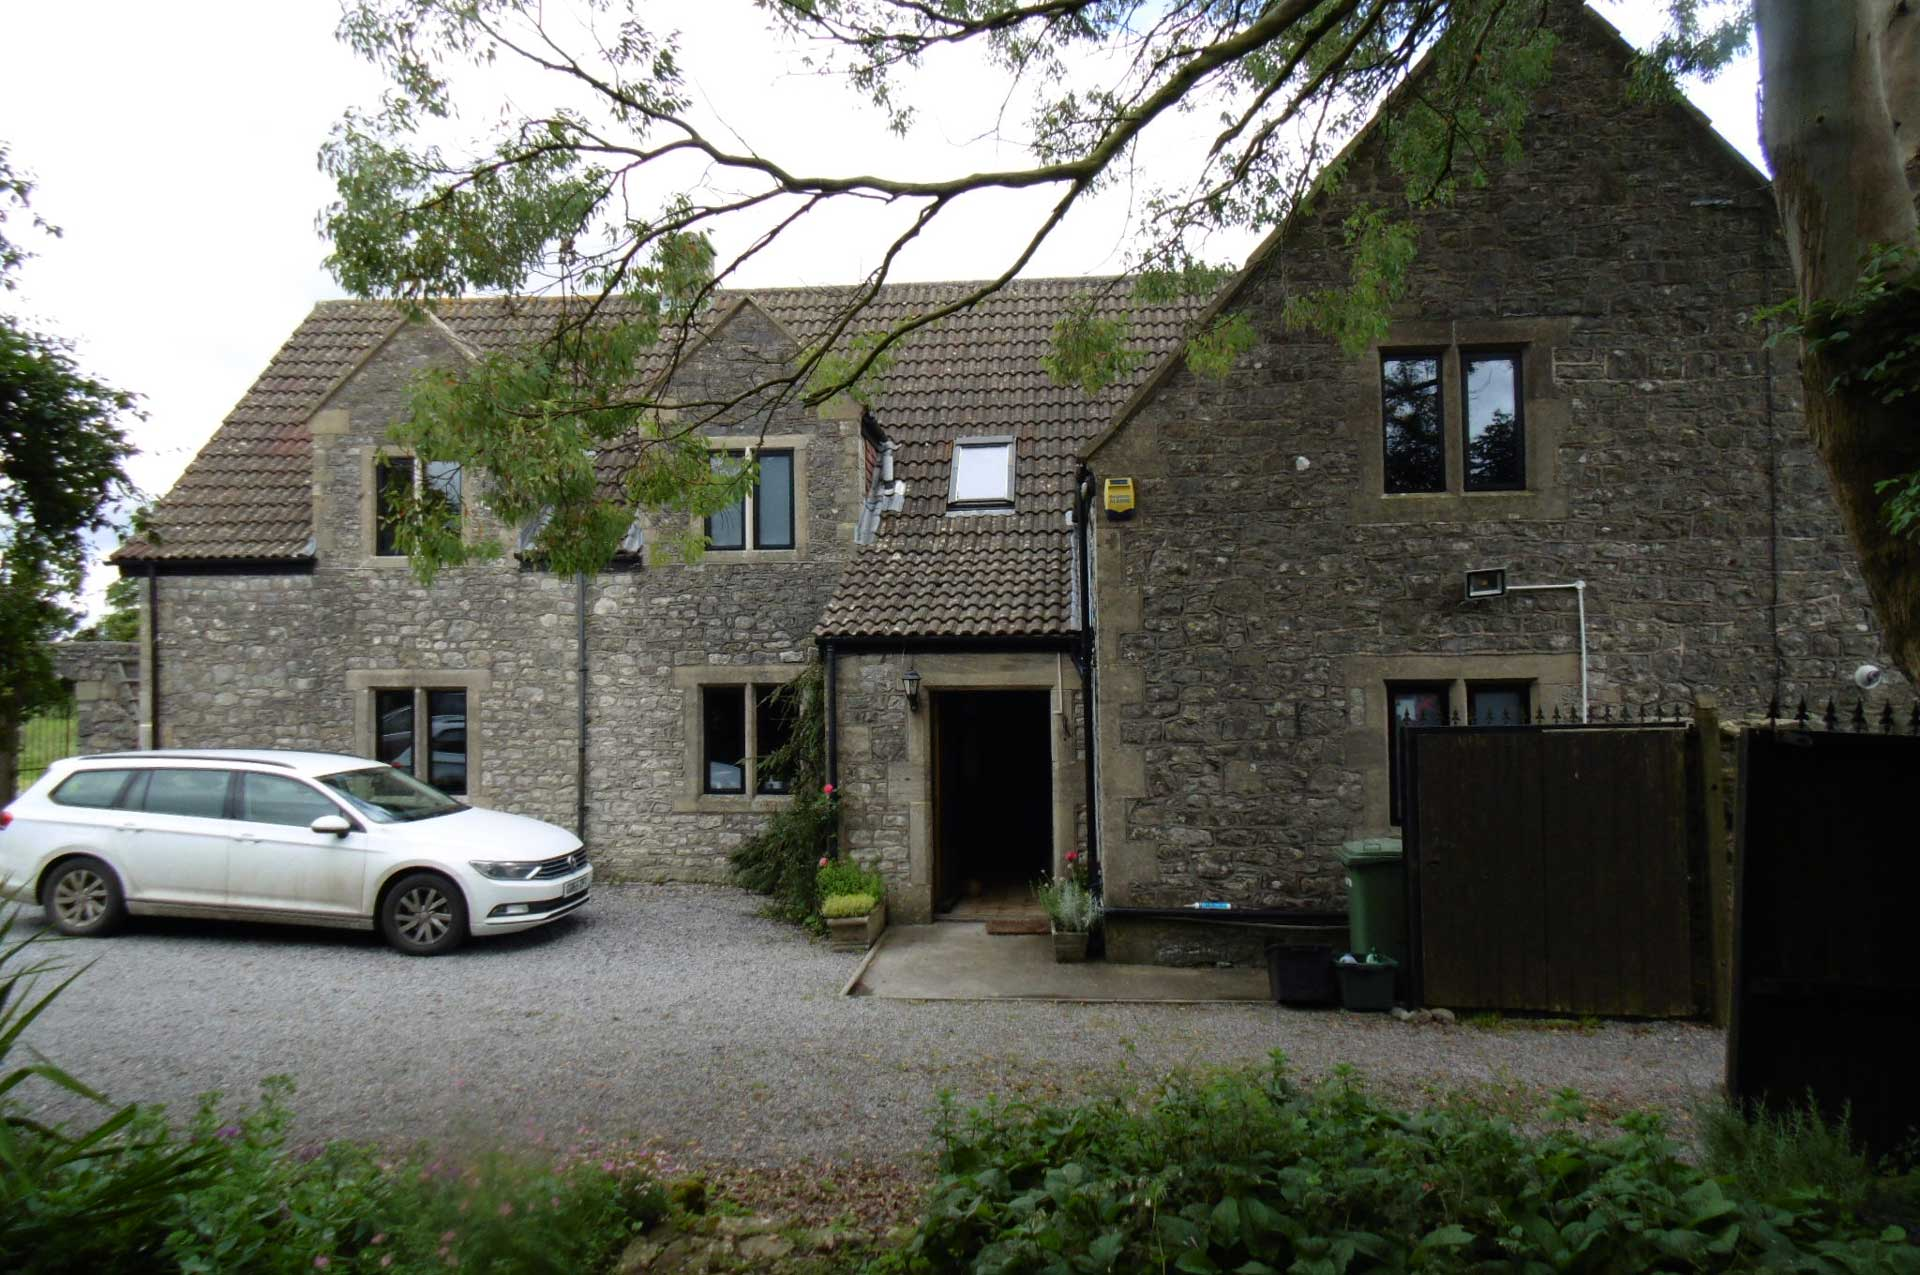 Slimline Aluminium windows in stone mullions